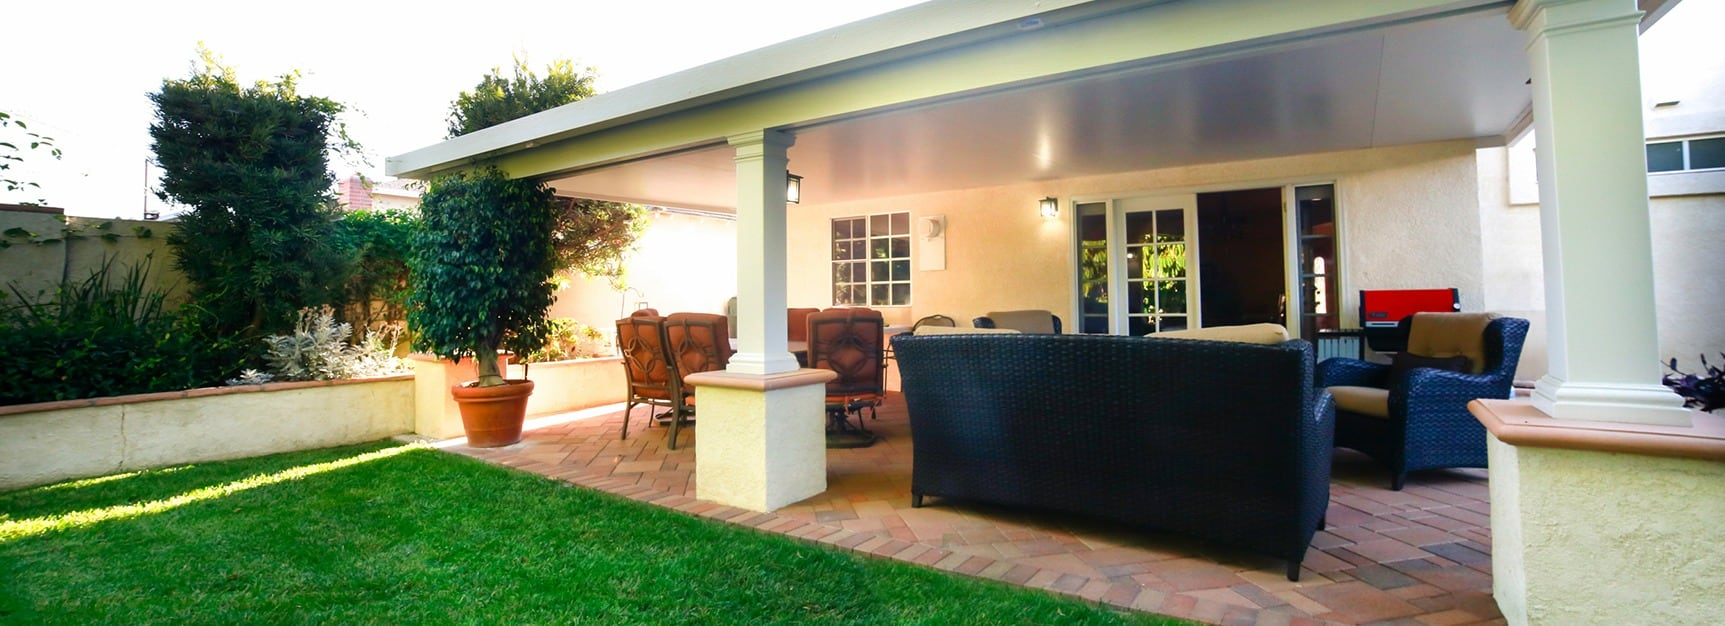 About Patio Warehouse Covers